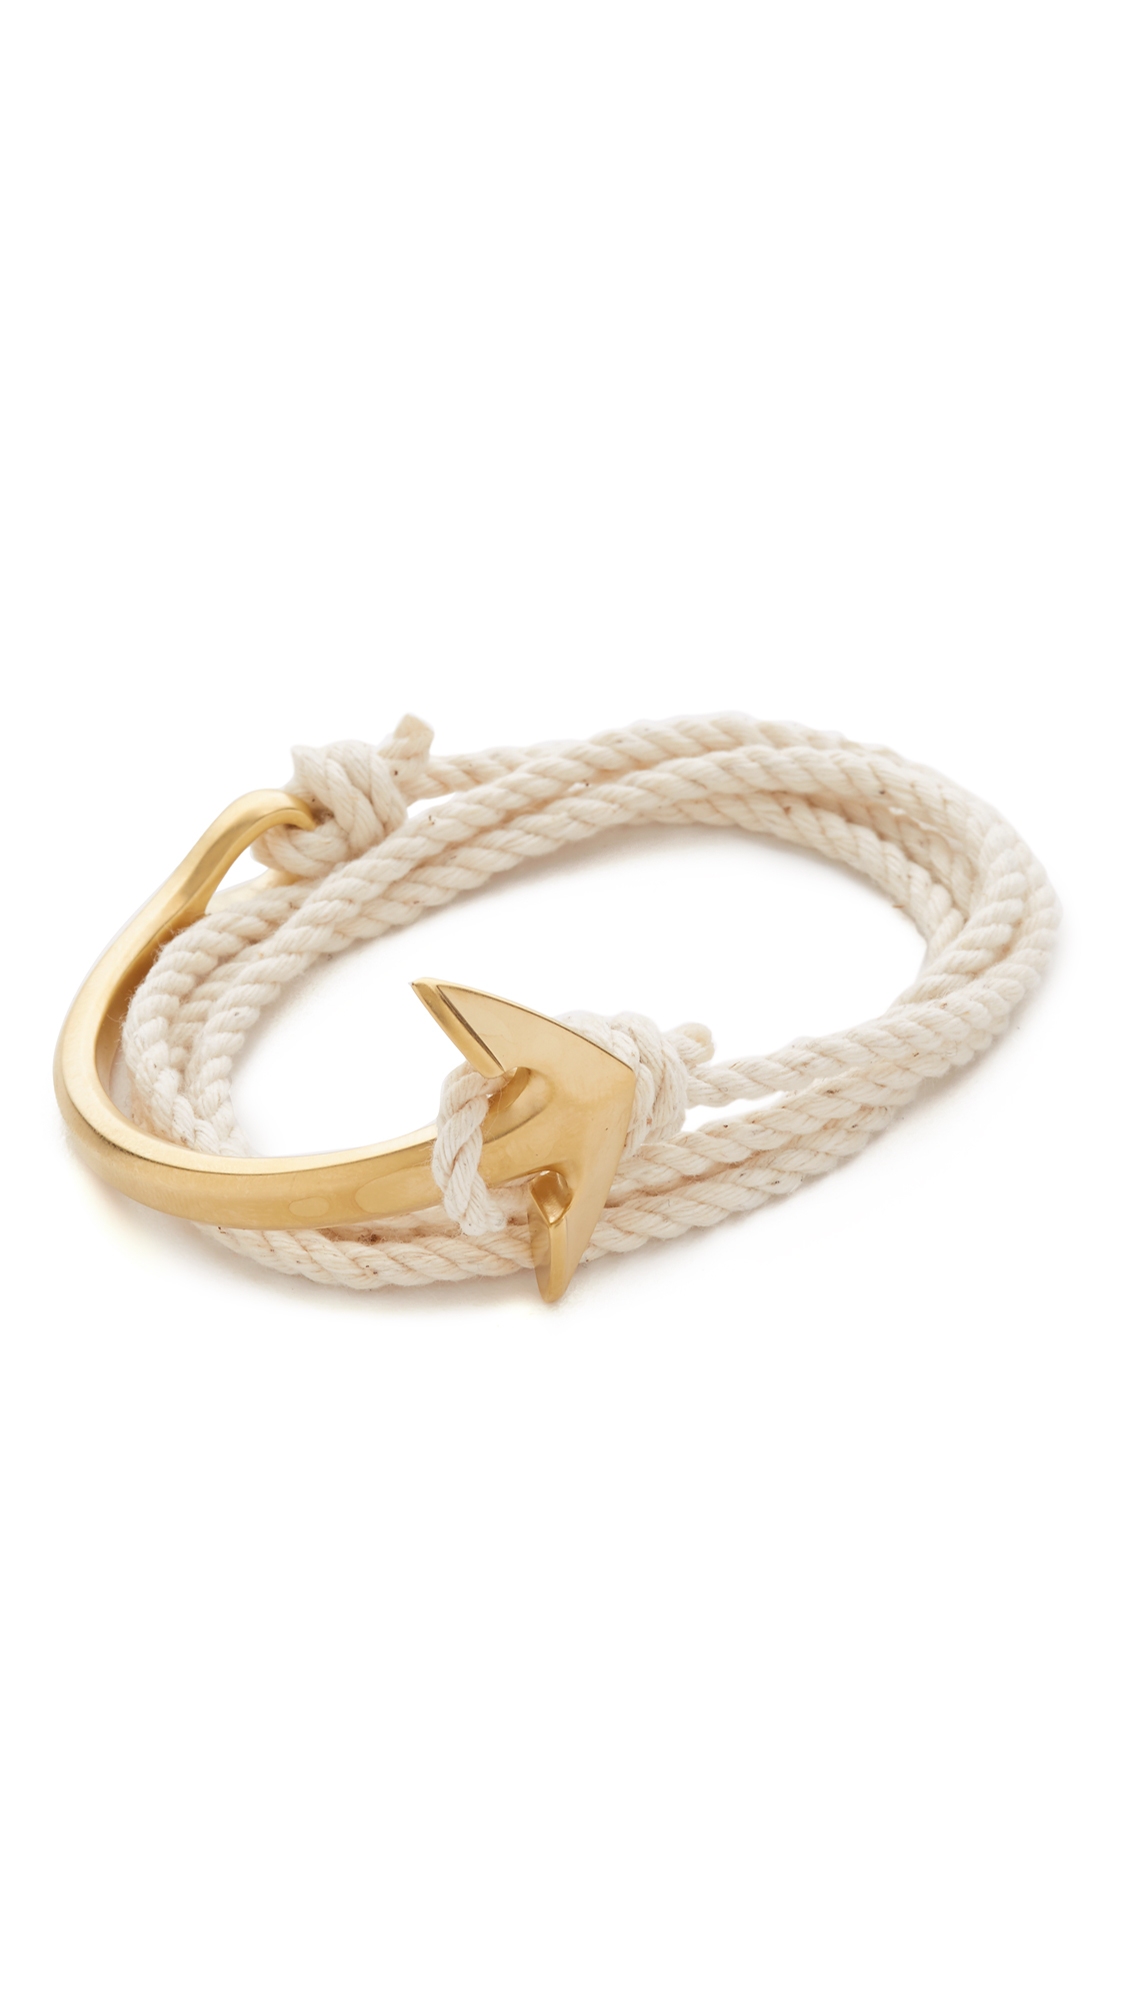 pin for bracelet nautical cord jewelry anchor s women vineyard enamel vines rope